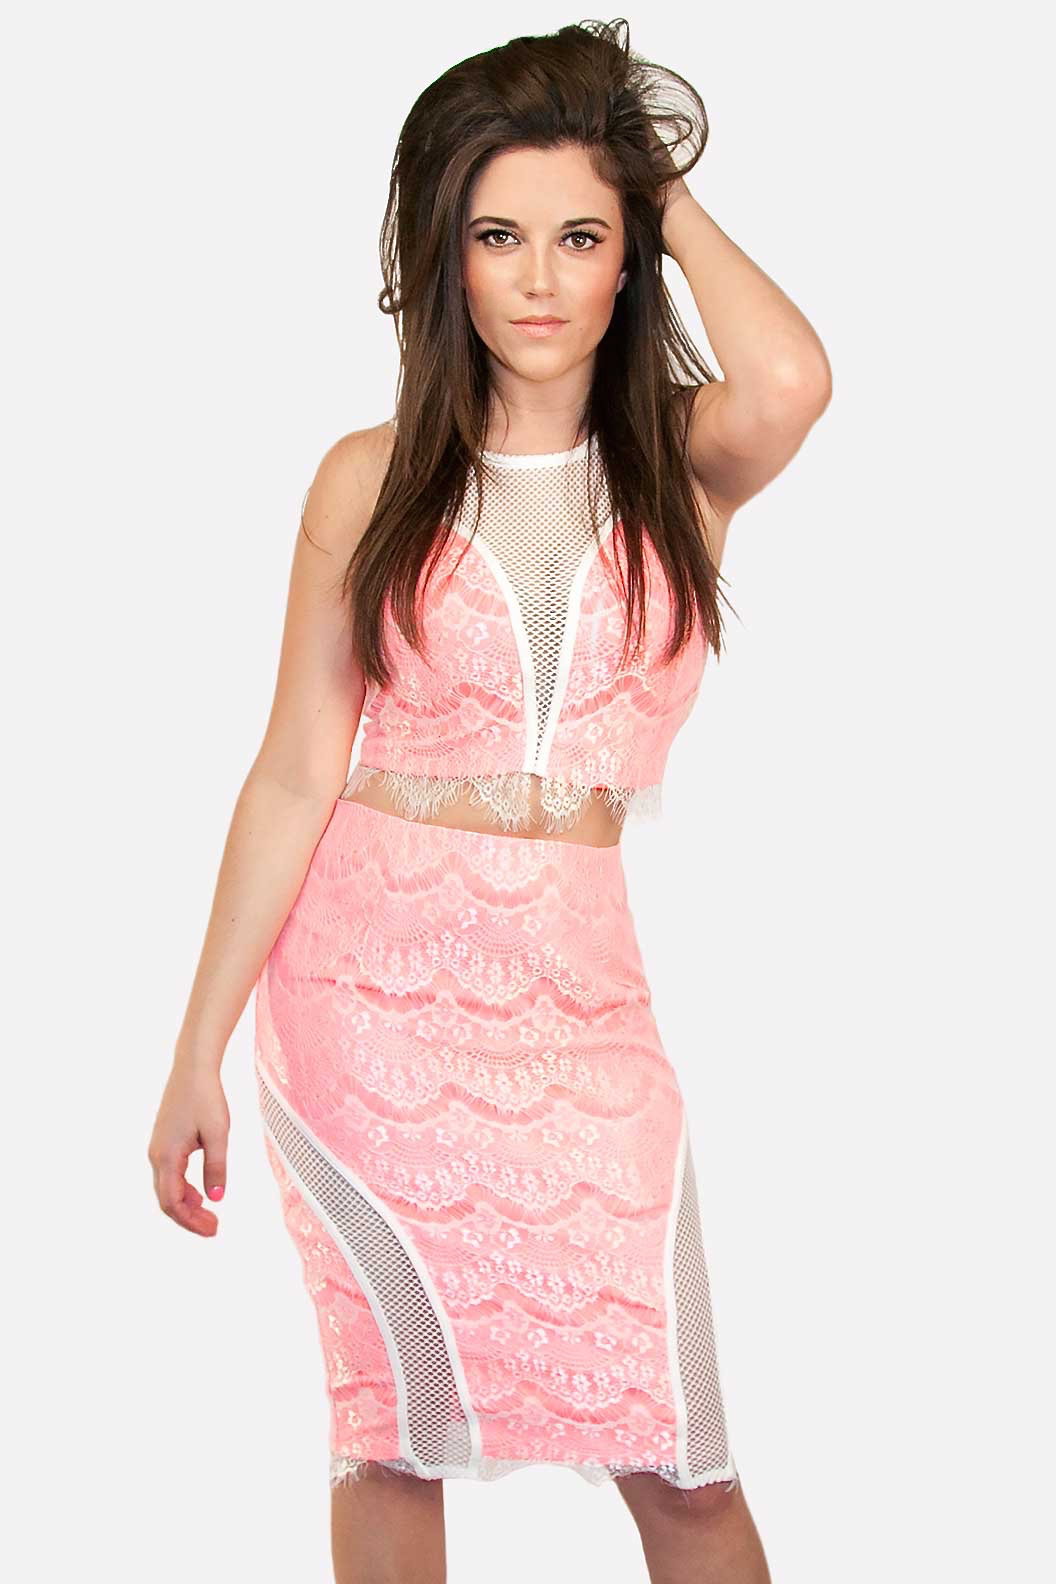 Pink and White Lace Crop Top and Skirt